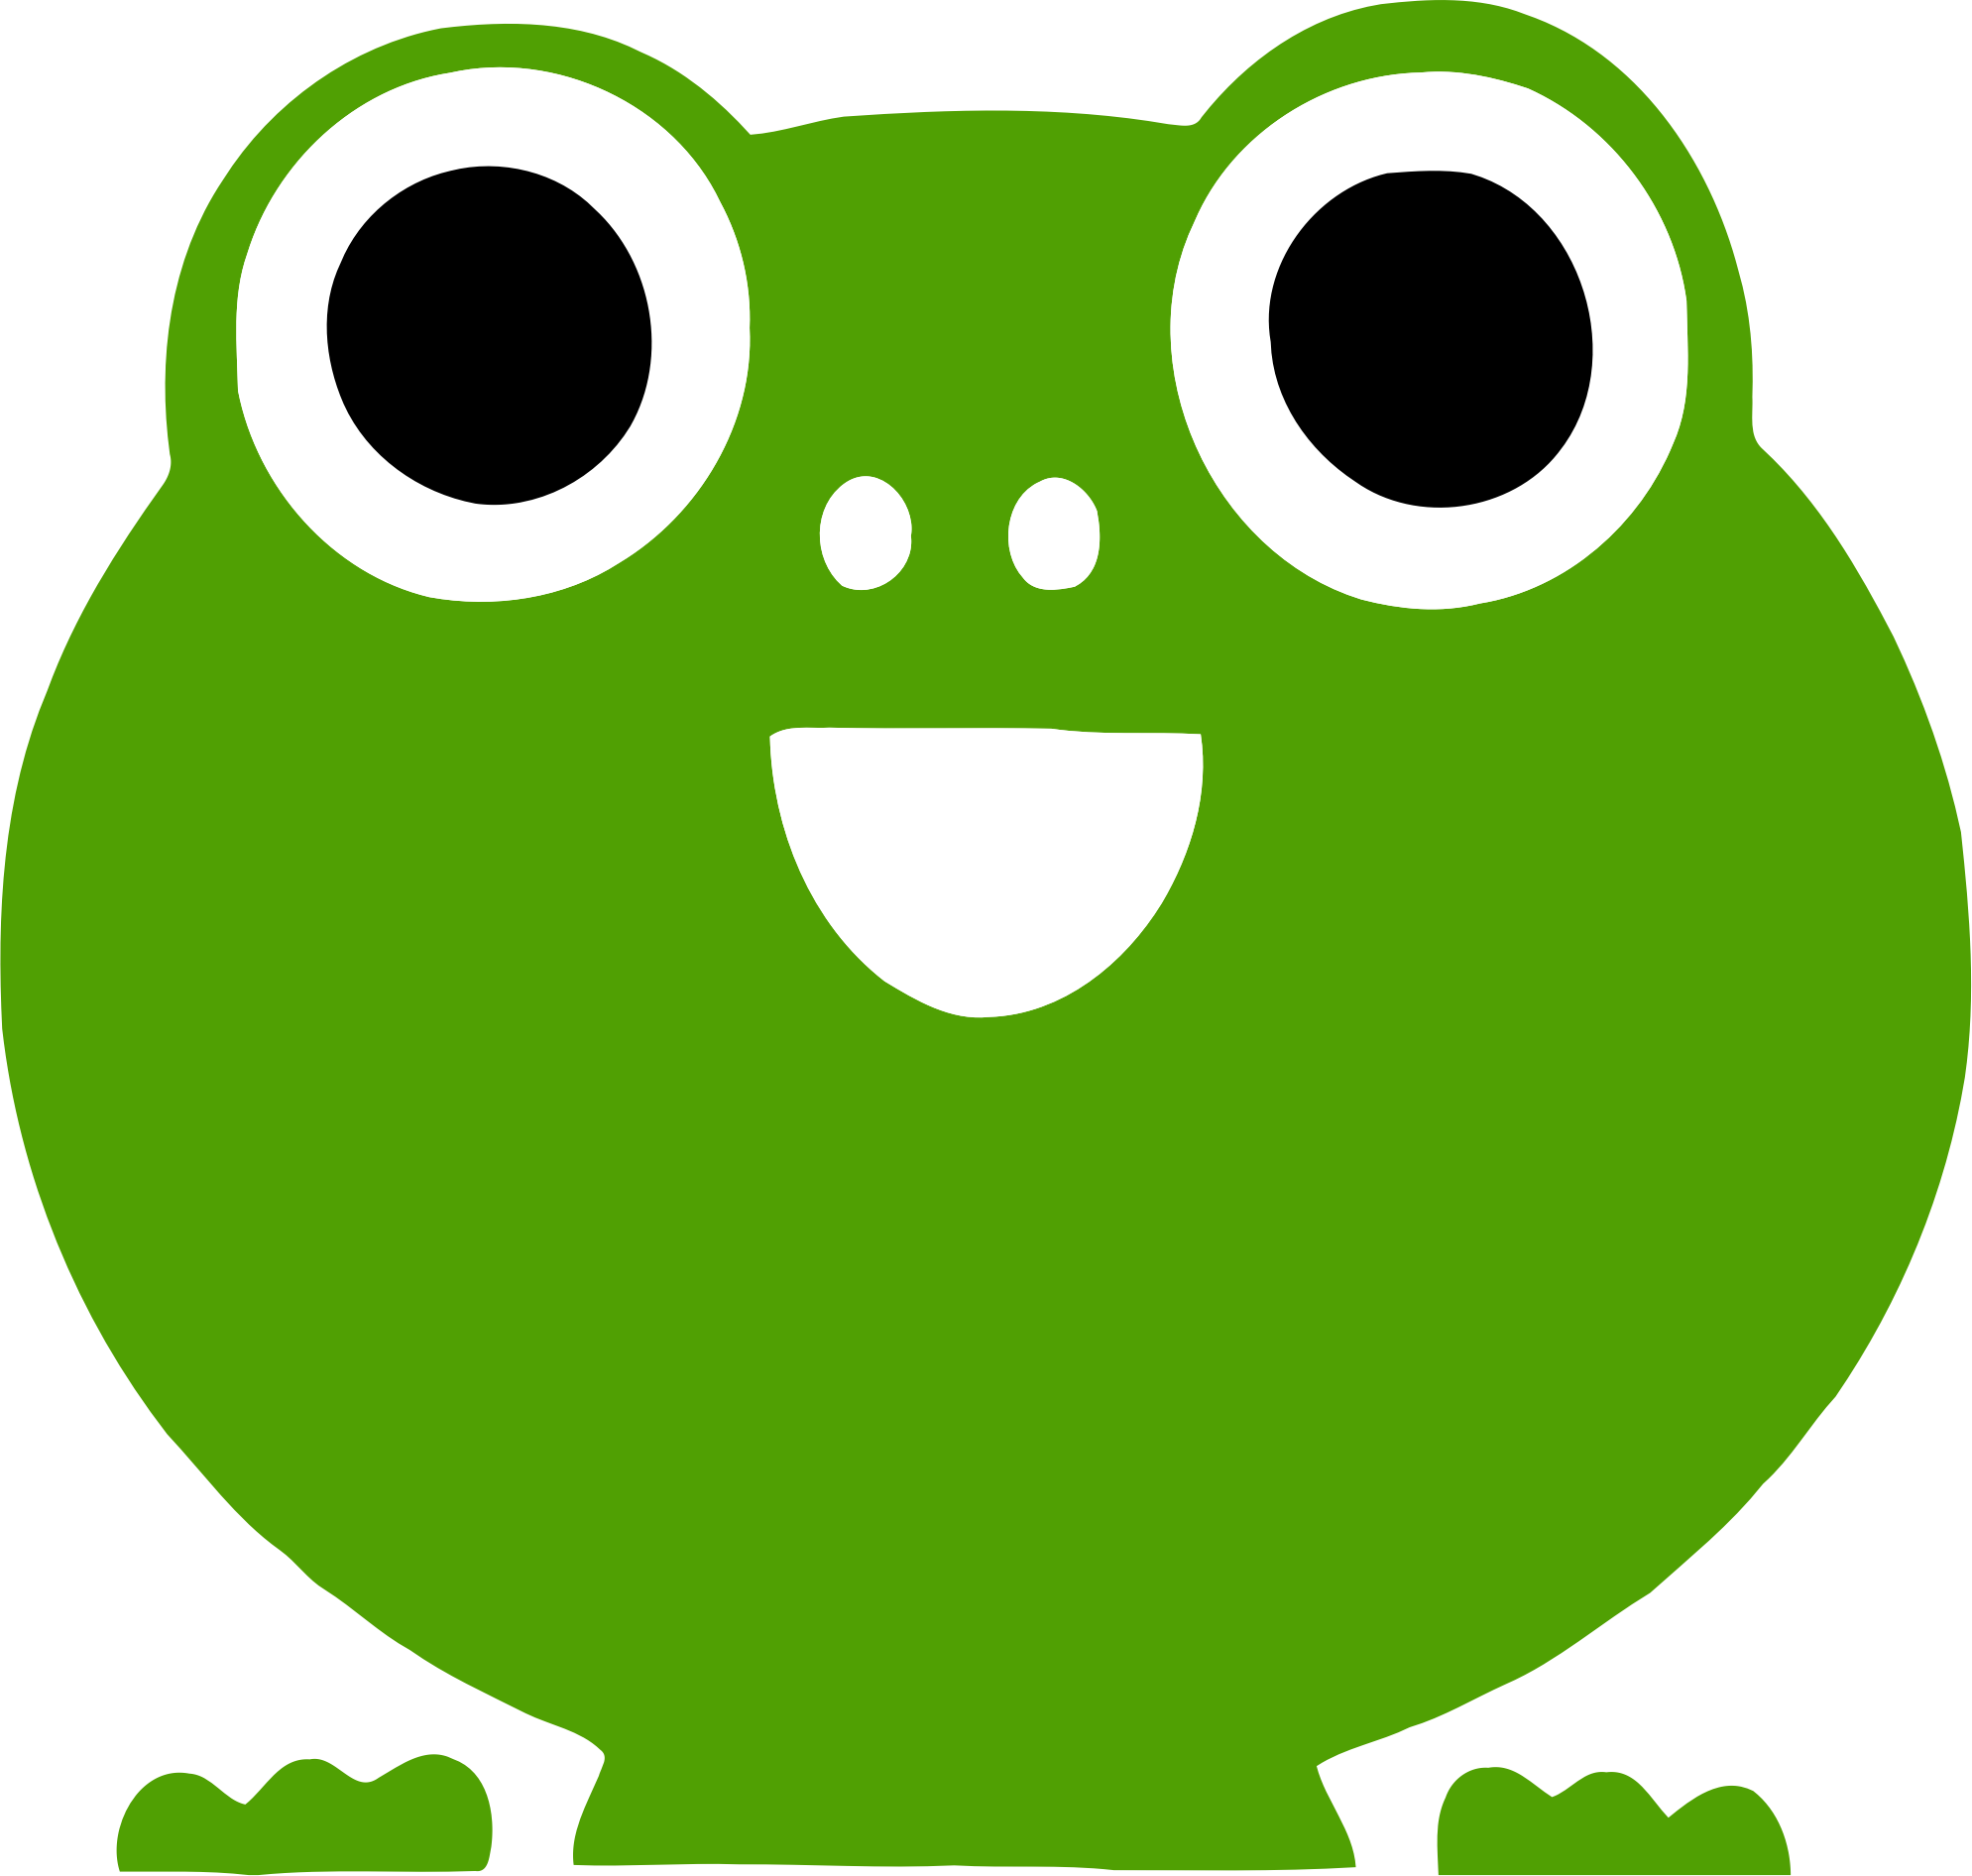 Frog icon. Frogs clipart sign